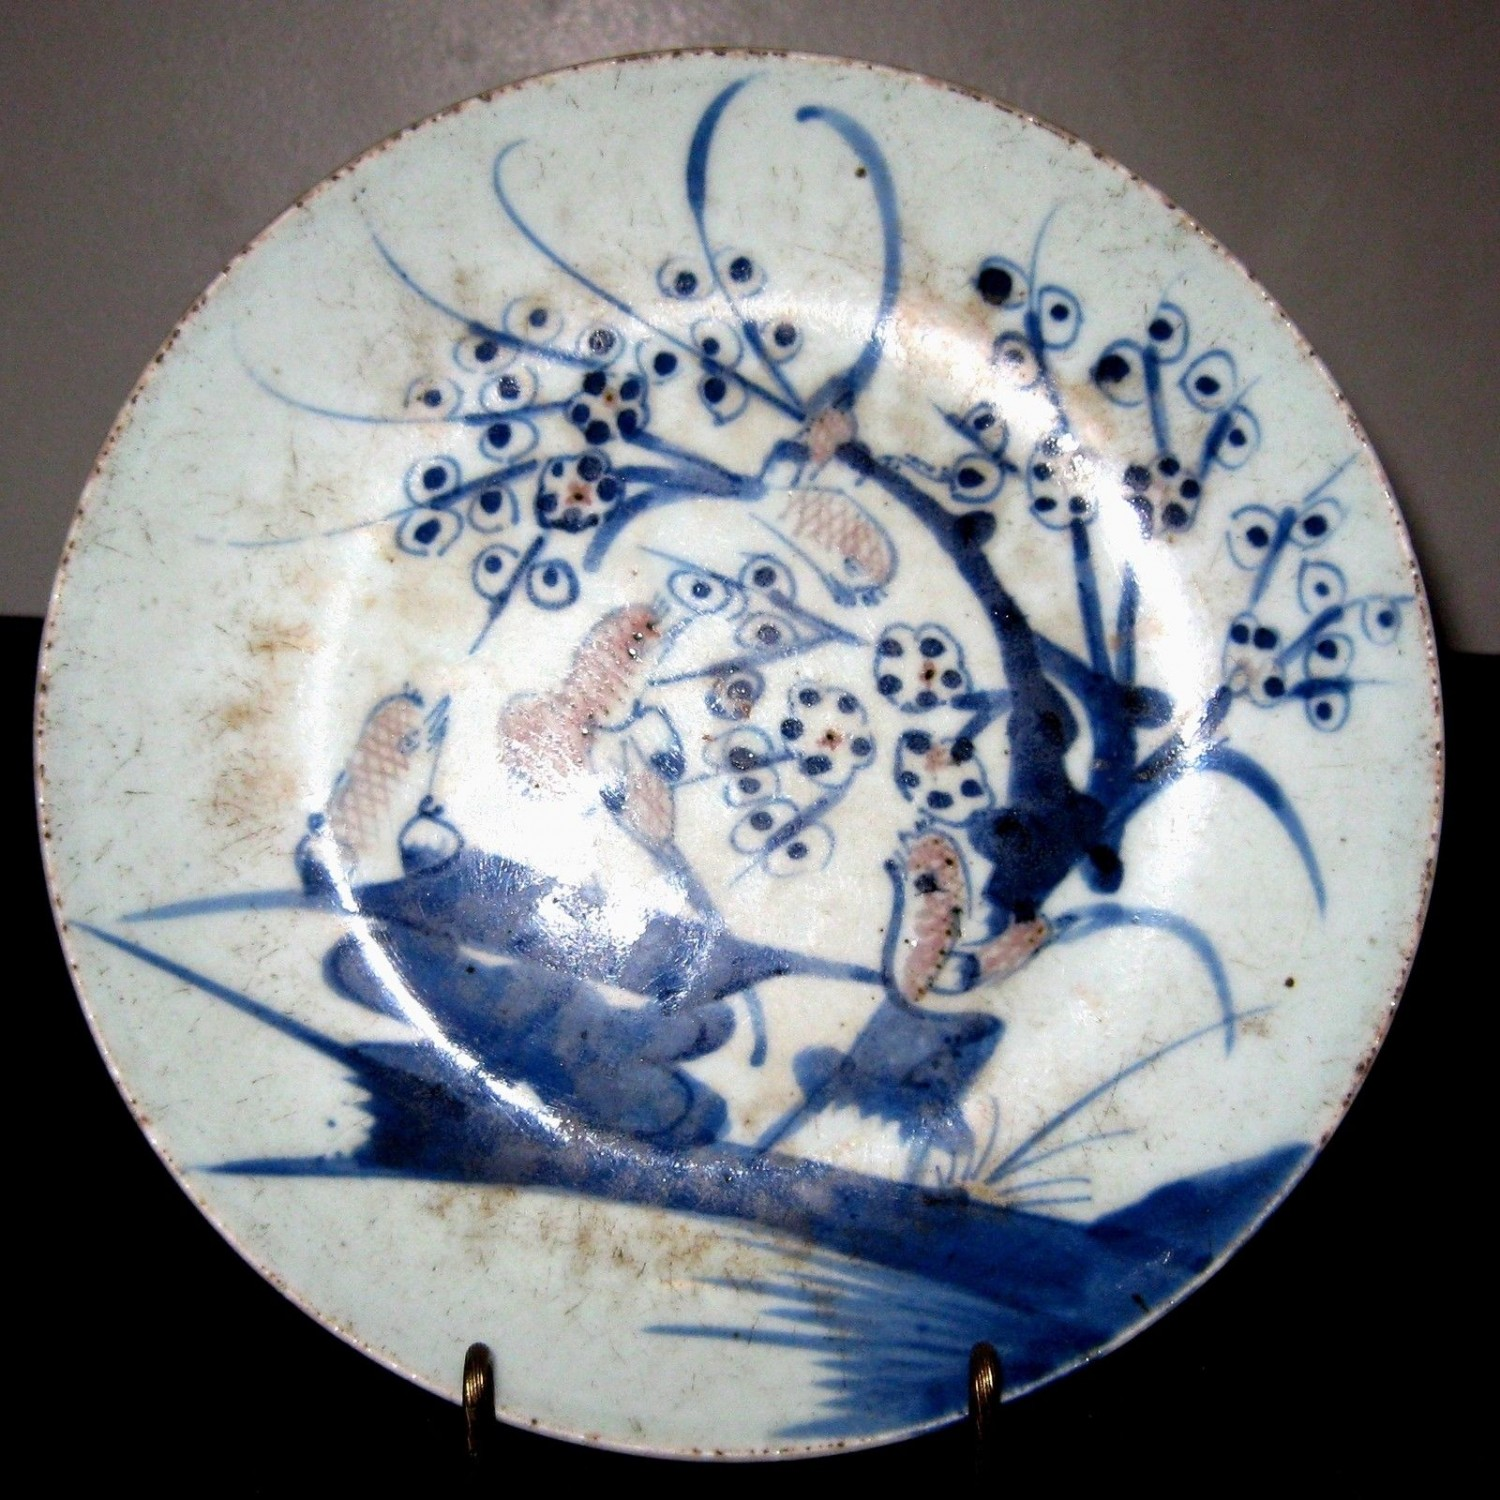 ANTIQUE CHINESE PORCELAIN BLUE & WHITE, BIRTH & FLOWER PLATE ,19TH CENTURY, NR.